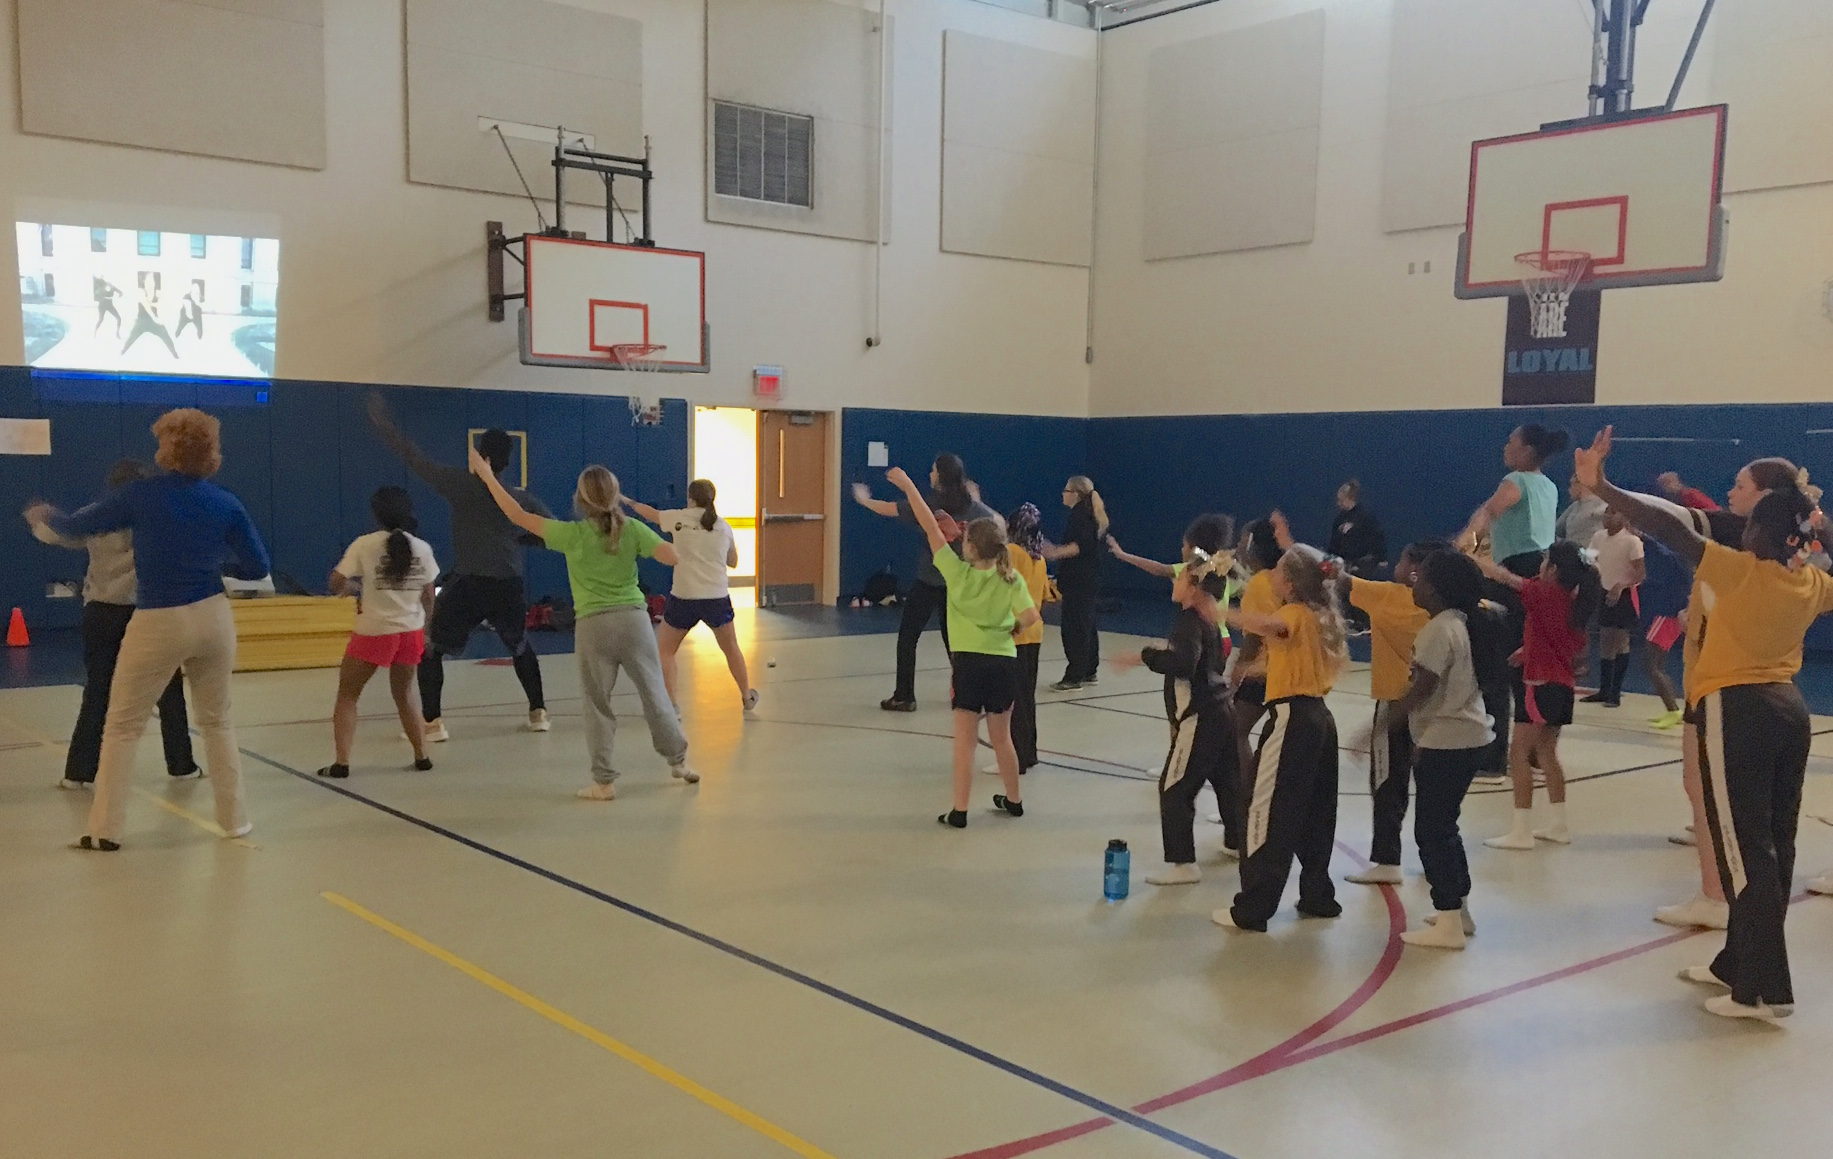 During a weekly Play60 Zumba session, MHS seniors decided to empower the elementary cheerleaders by inviting them into the gym to dance. It soon became a Wednesday tradition.